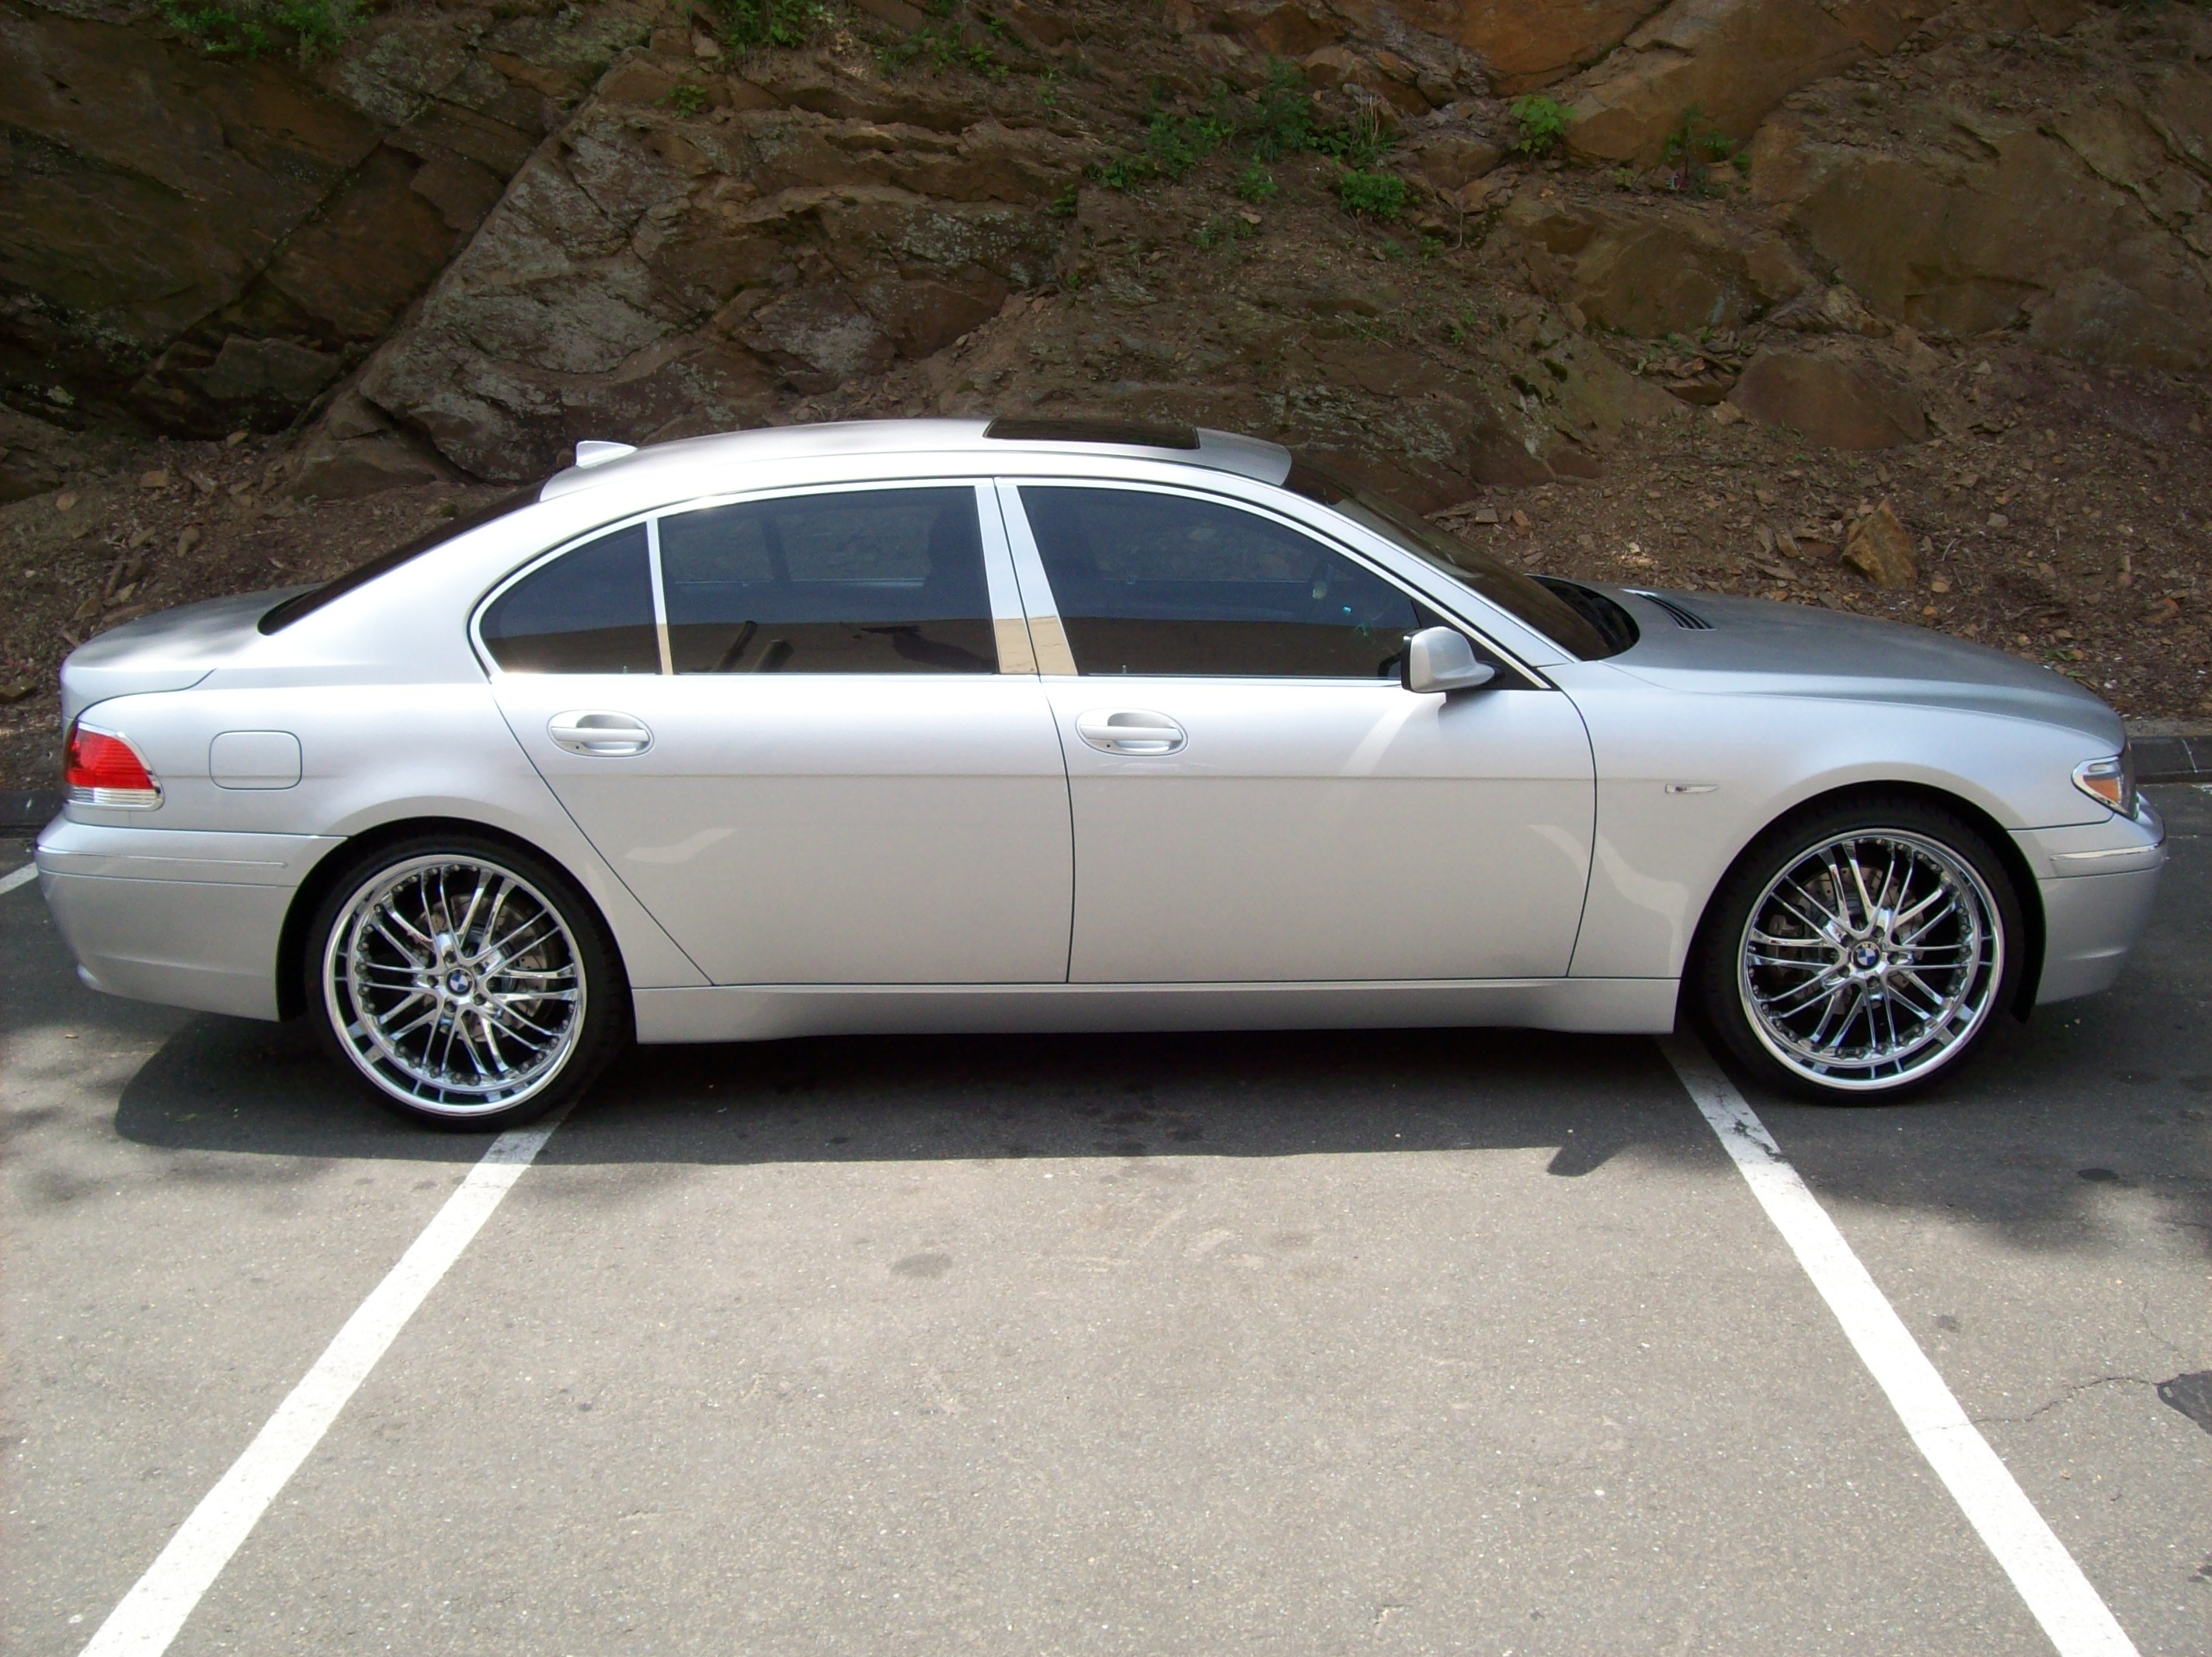 outlawimmortal55's 2003 BMW 7 Series